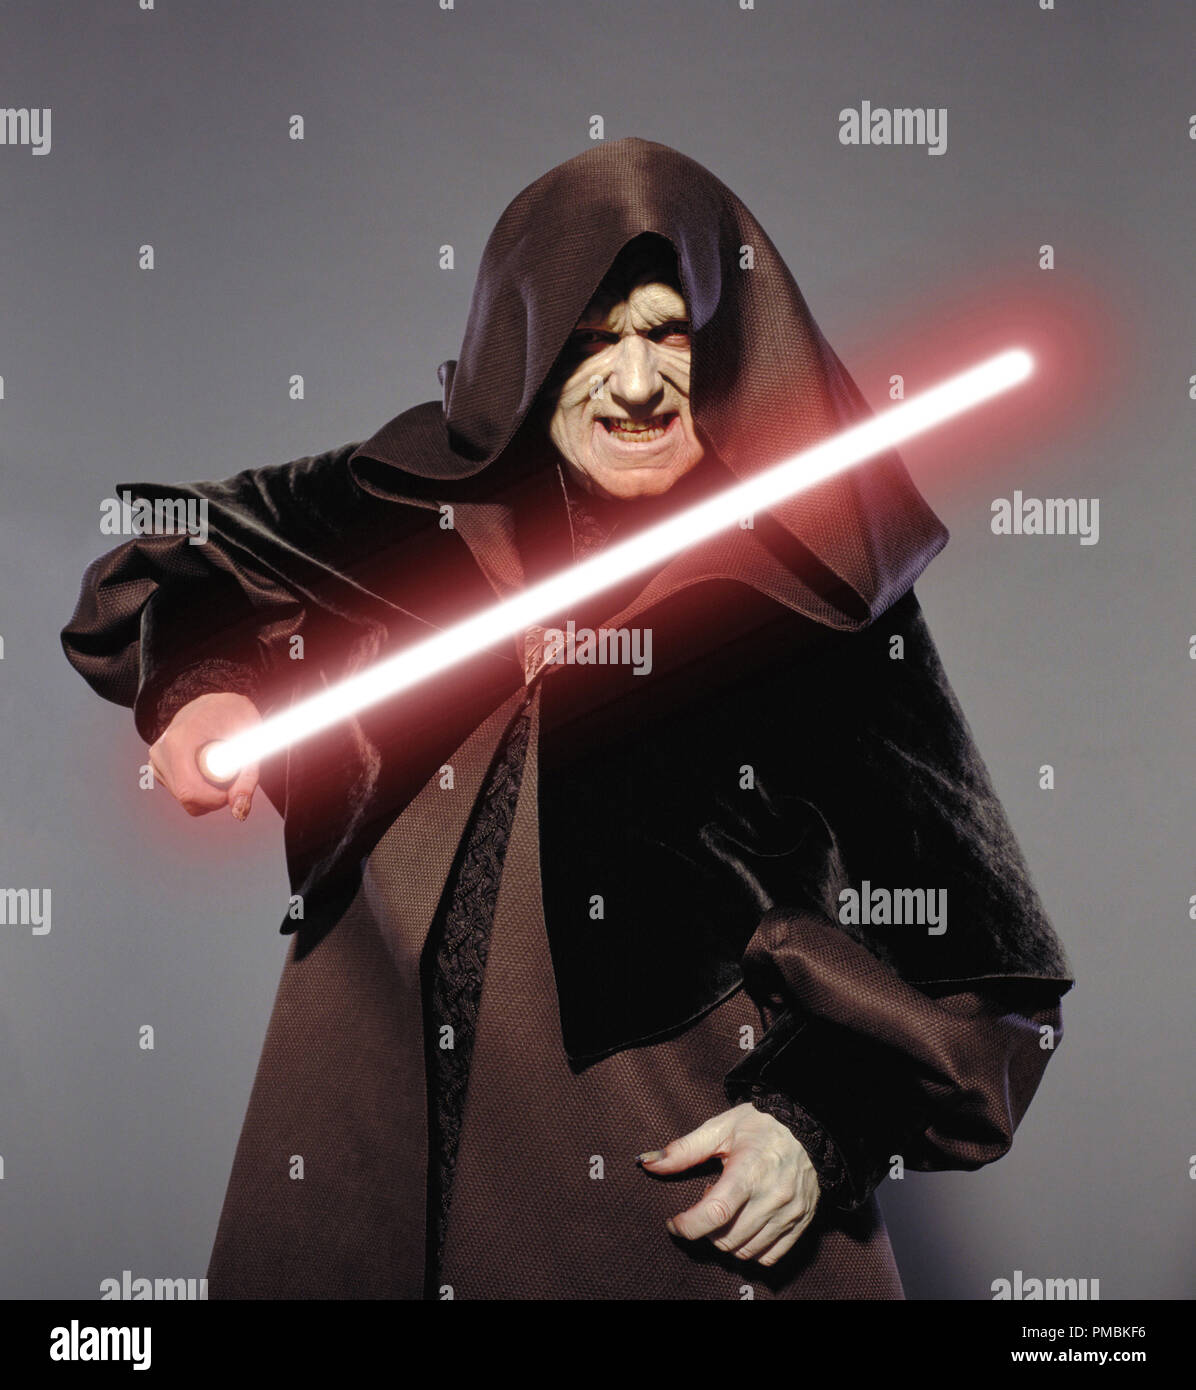 Ian Mcdiarmid Plays Emperor Palpatine In Star Wars Episode Iii Revenge Of The Sith Tm C 2005 Lucasfilm Ltd All Rights Reserved Stock Photo Alamy